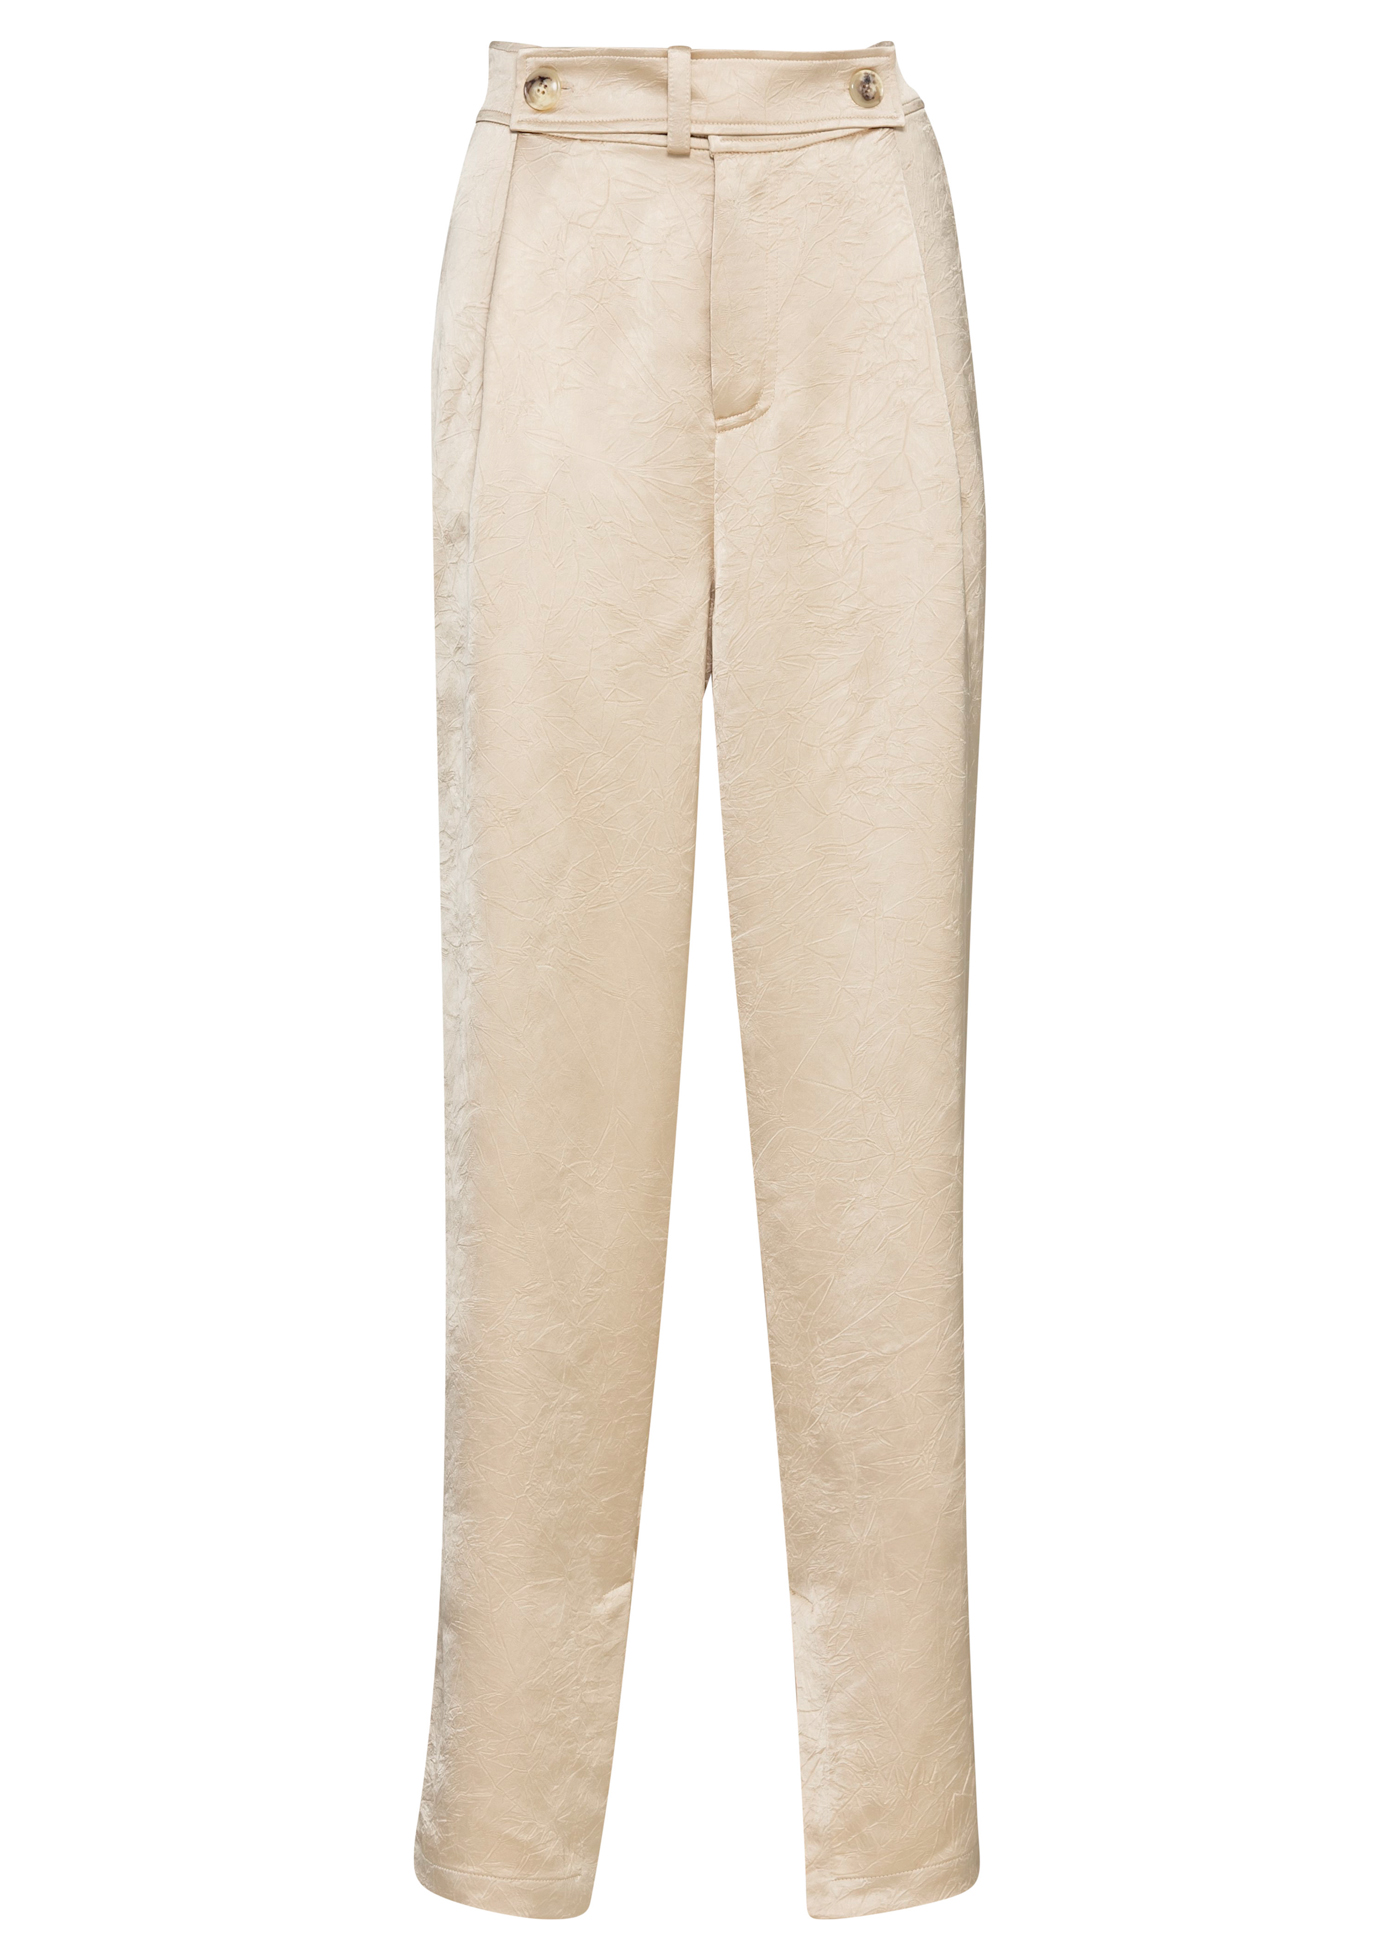 ODILE Trousers image number 0